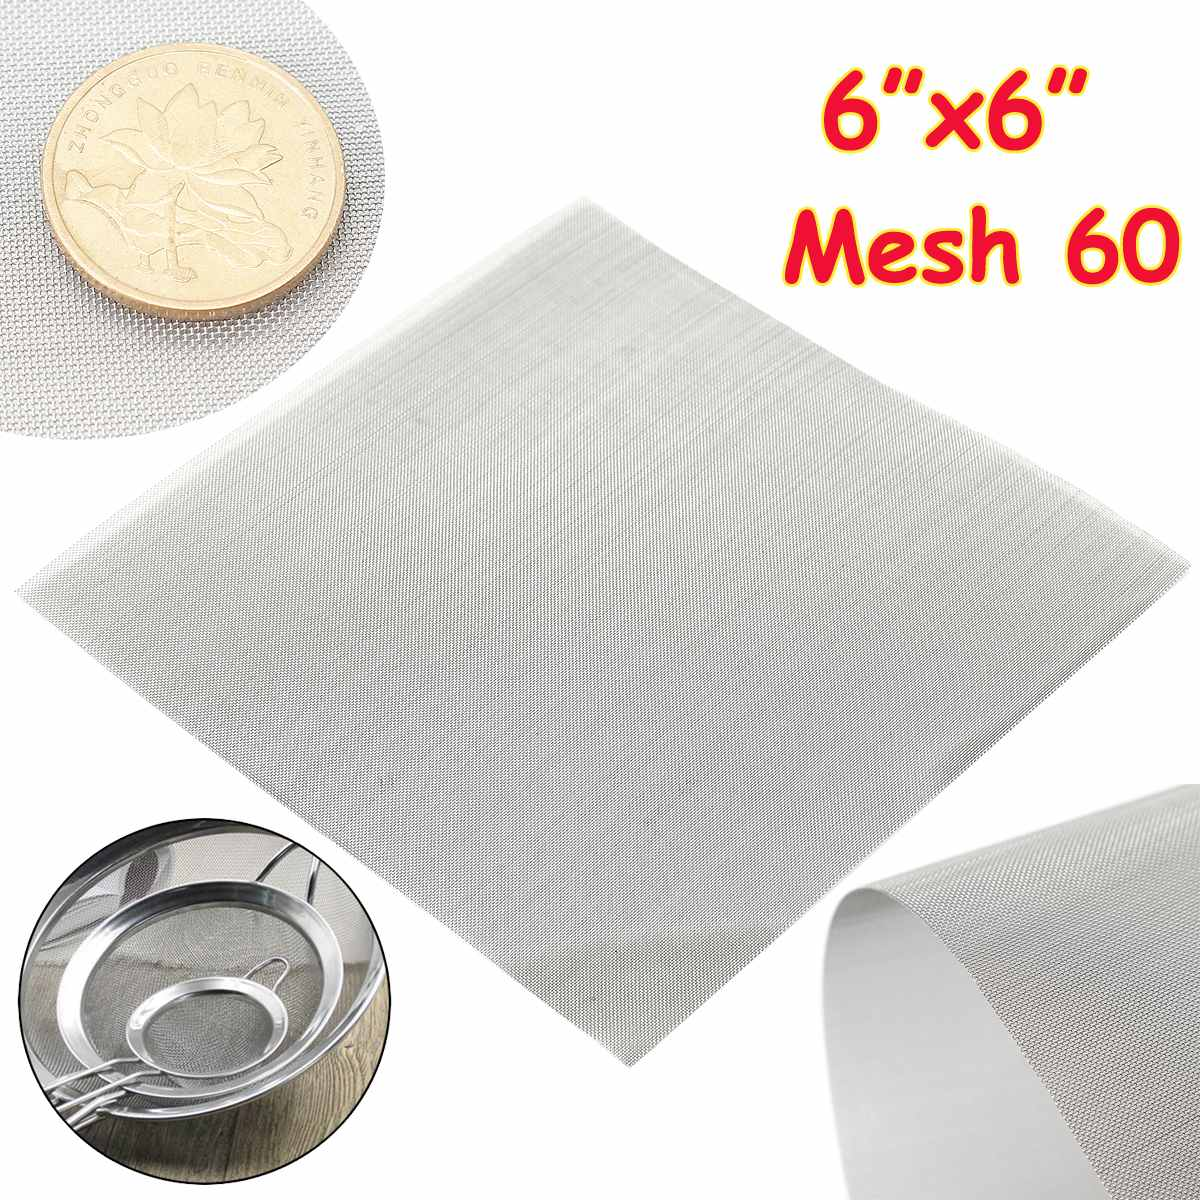 1pc 15x15cm 60 Mesh 304 Stainless Steel Woven Wire High Quality <font><b>Screening</b></font> Filter Sheet image